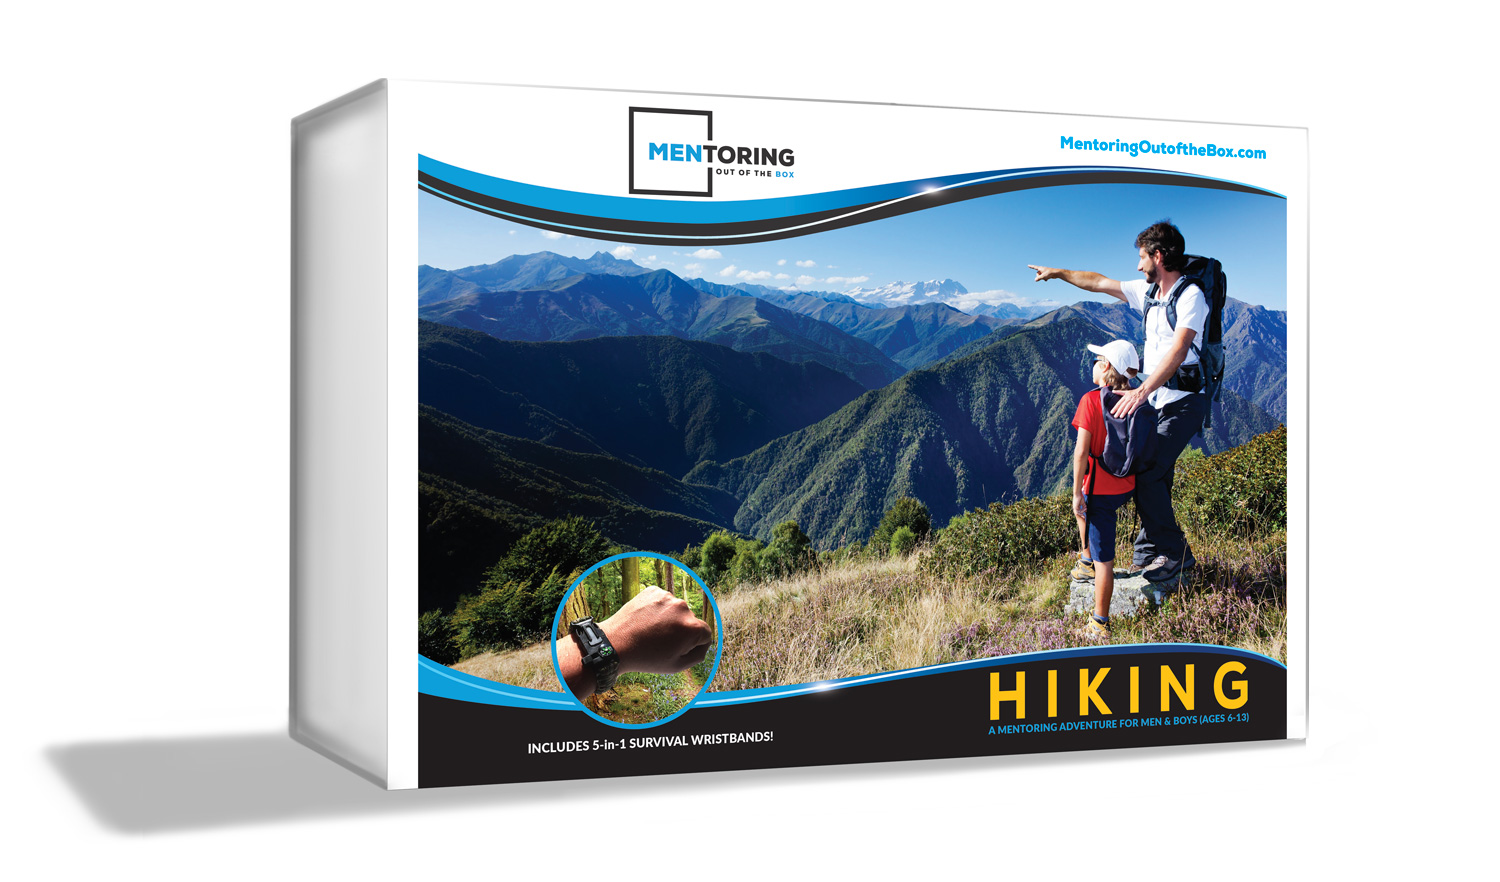 Mentoring Out of the Box - Hiking